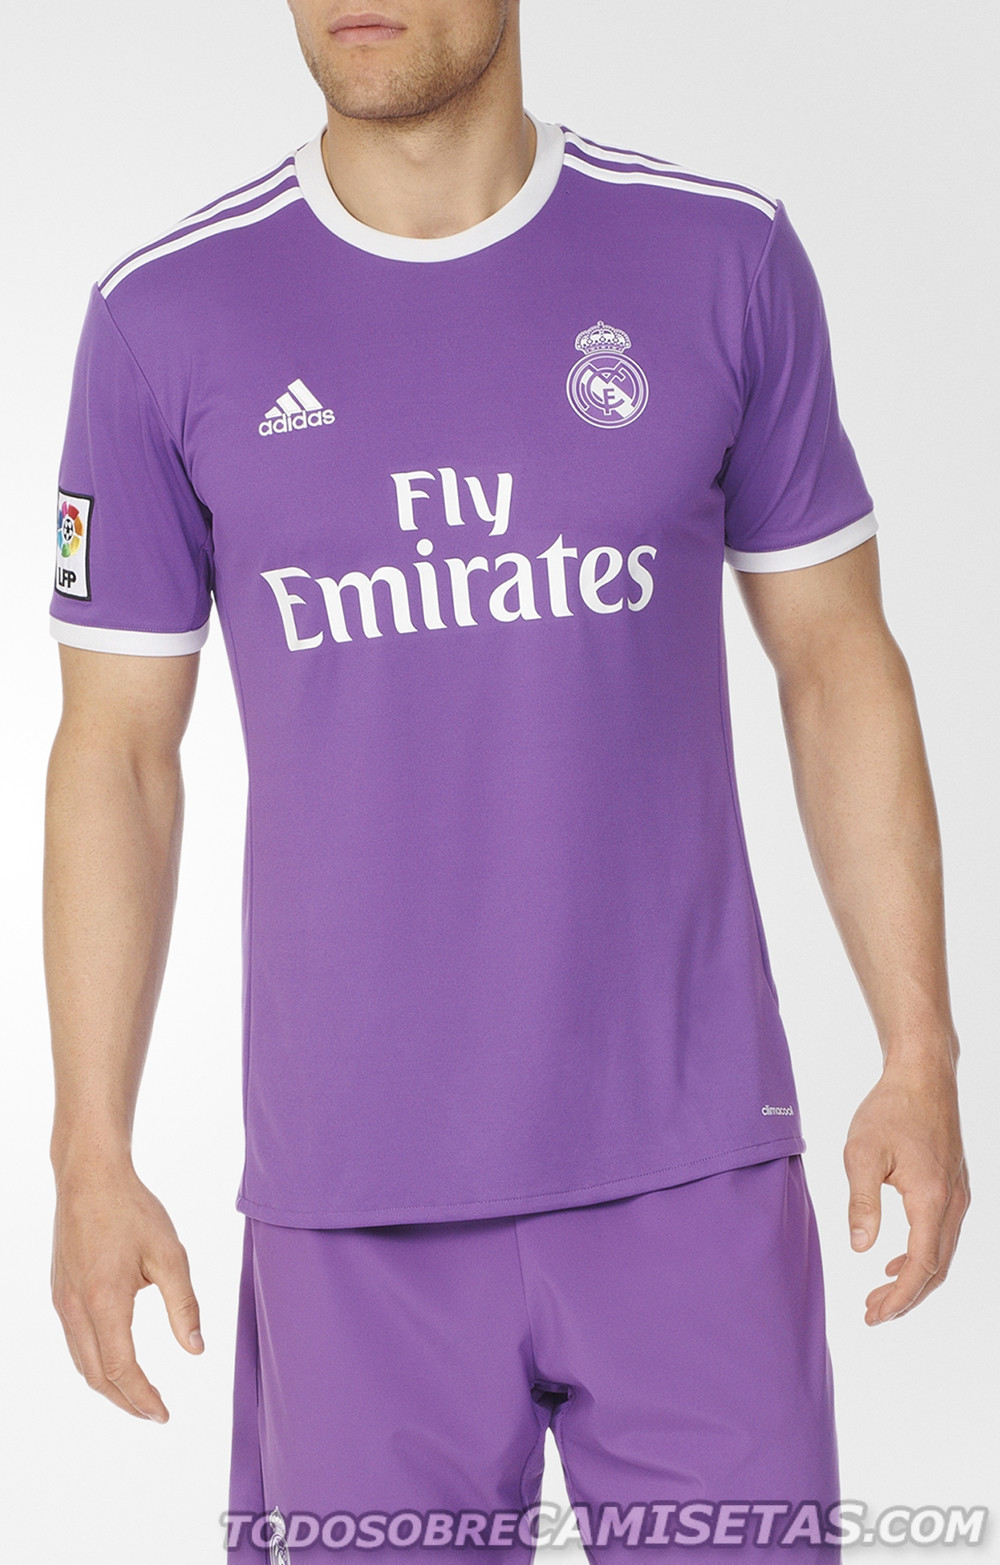 Real-Madrid-2016-17-adidas-new-away-kit-6.jpg